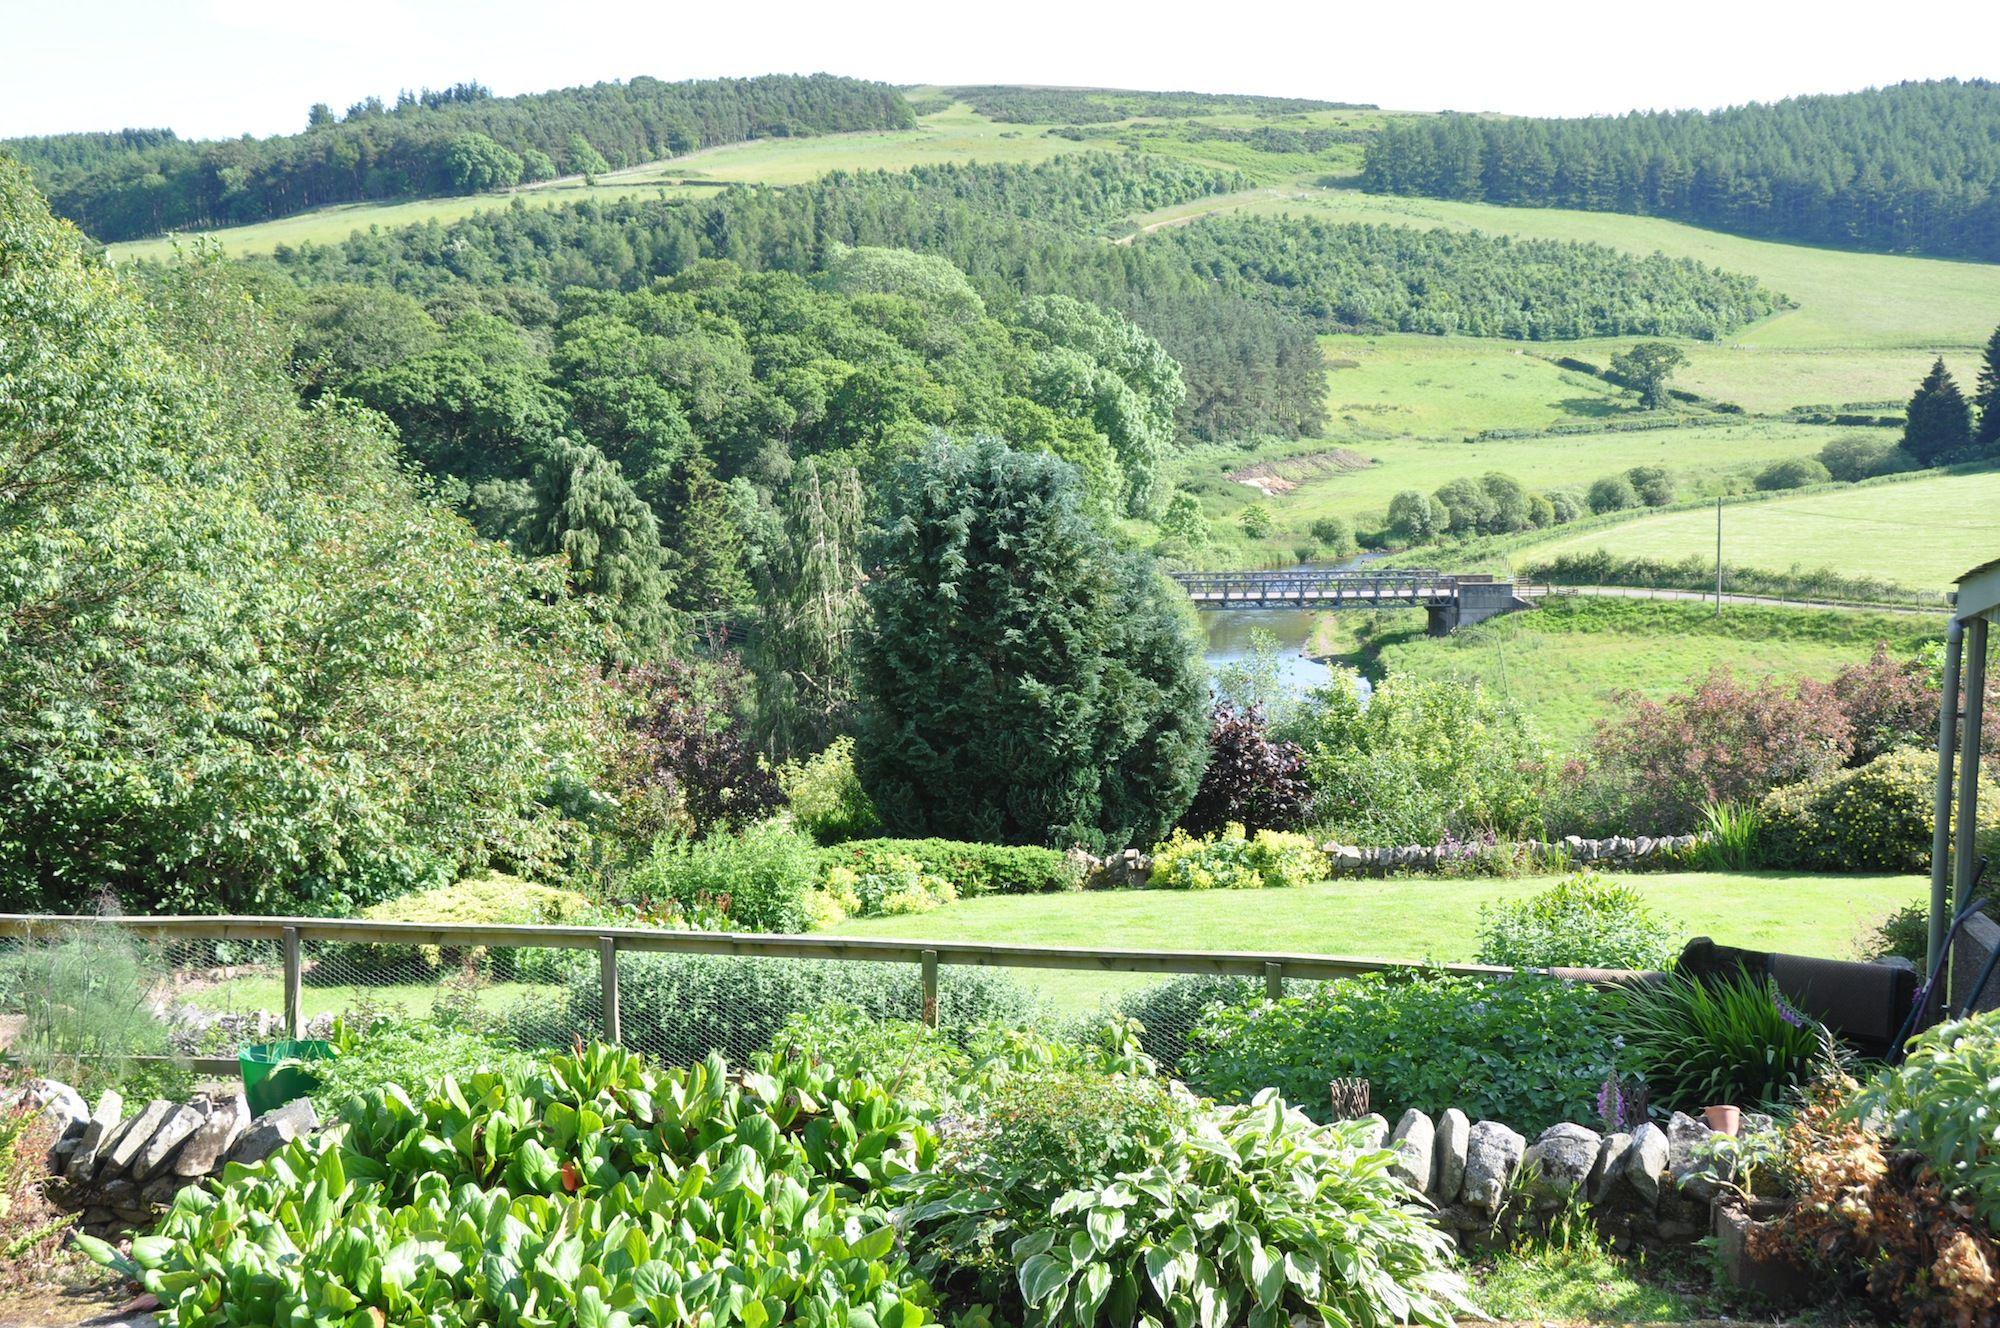 Hotels, Cottages, B&Bs & Glamping in Southern Scotland - Cool Places to Stay in the UK